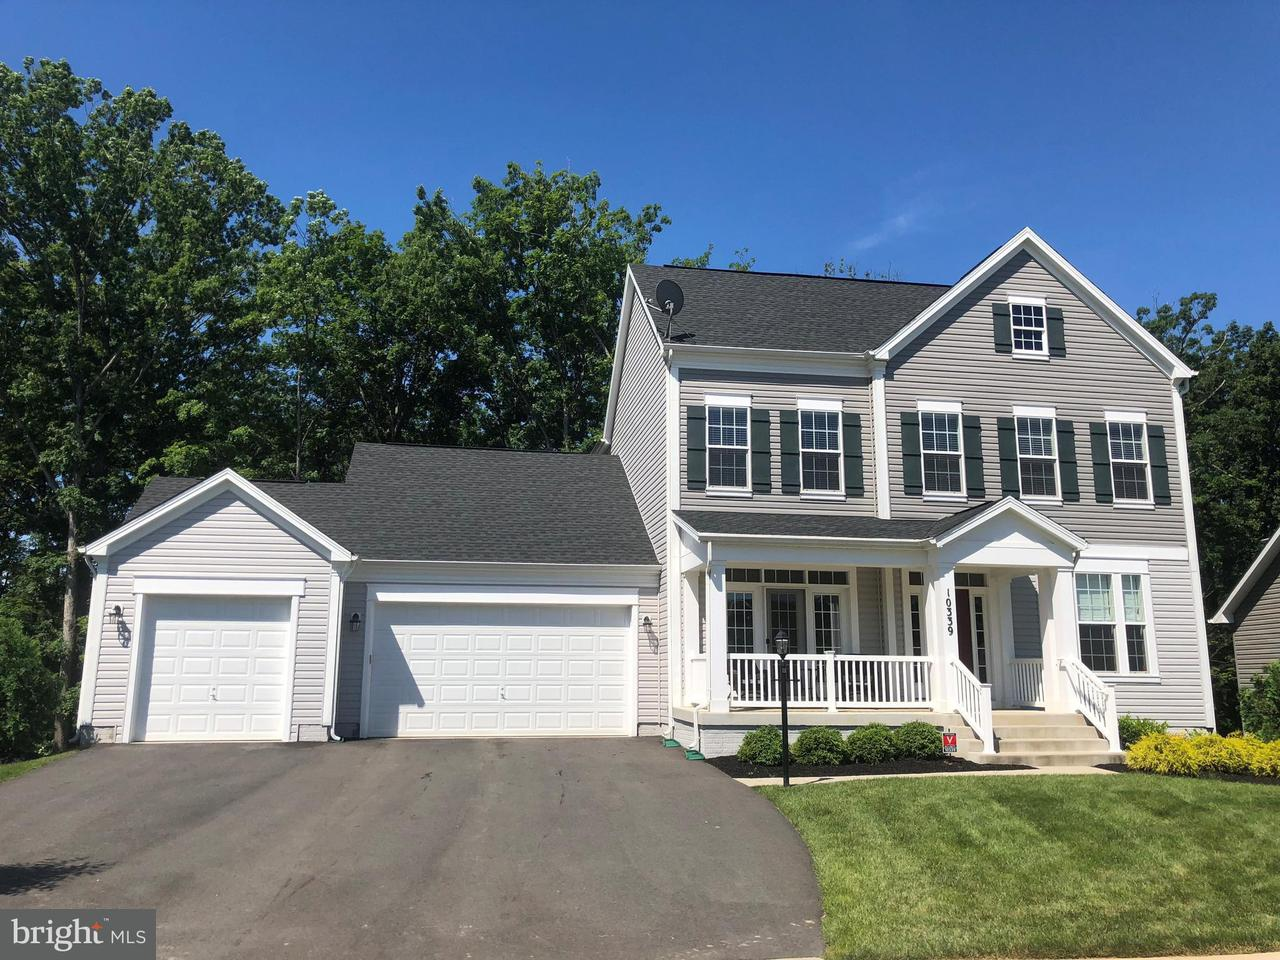 Single Family Home for Sale at 10339 Spring Iris Drive 10339 Spring Iris Drive Bristow, Virginia 20136 United States